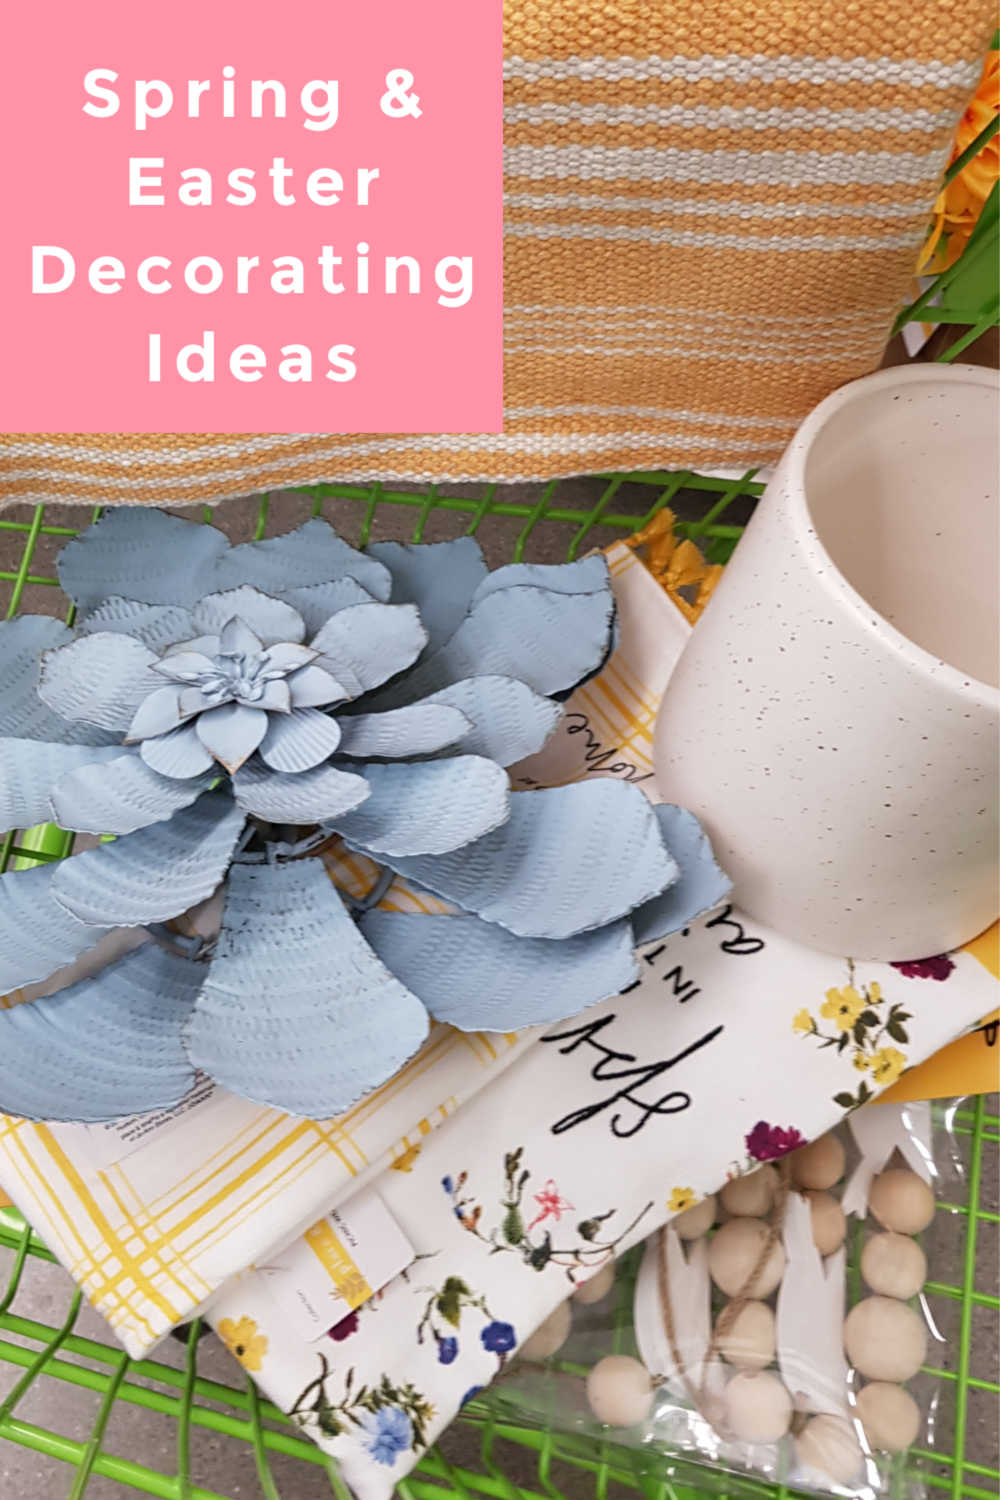 Easter Decorating Ideas + Spring Decorating